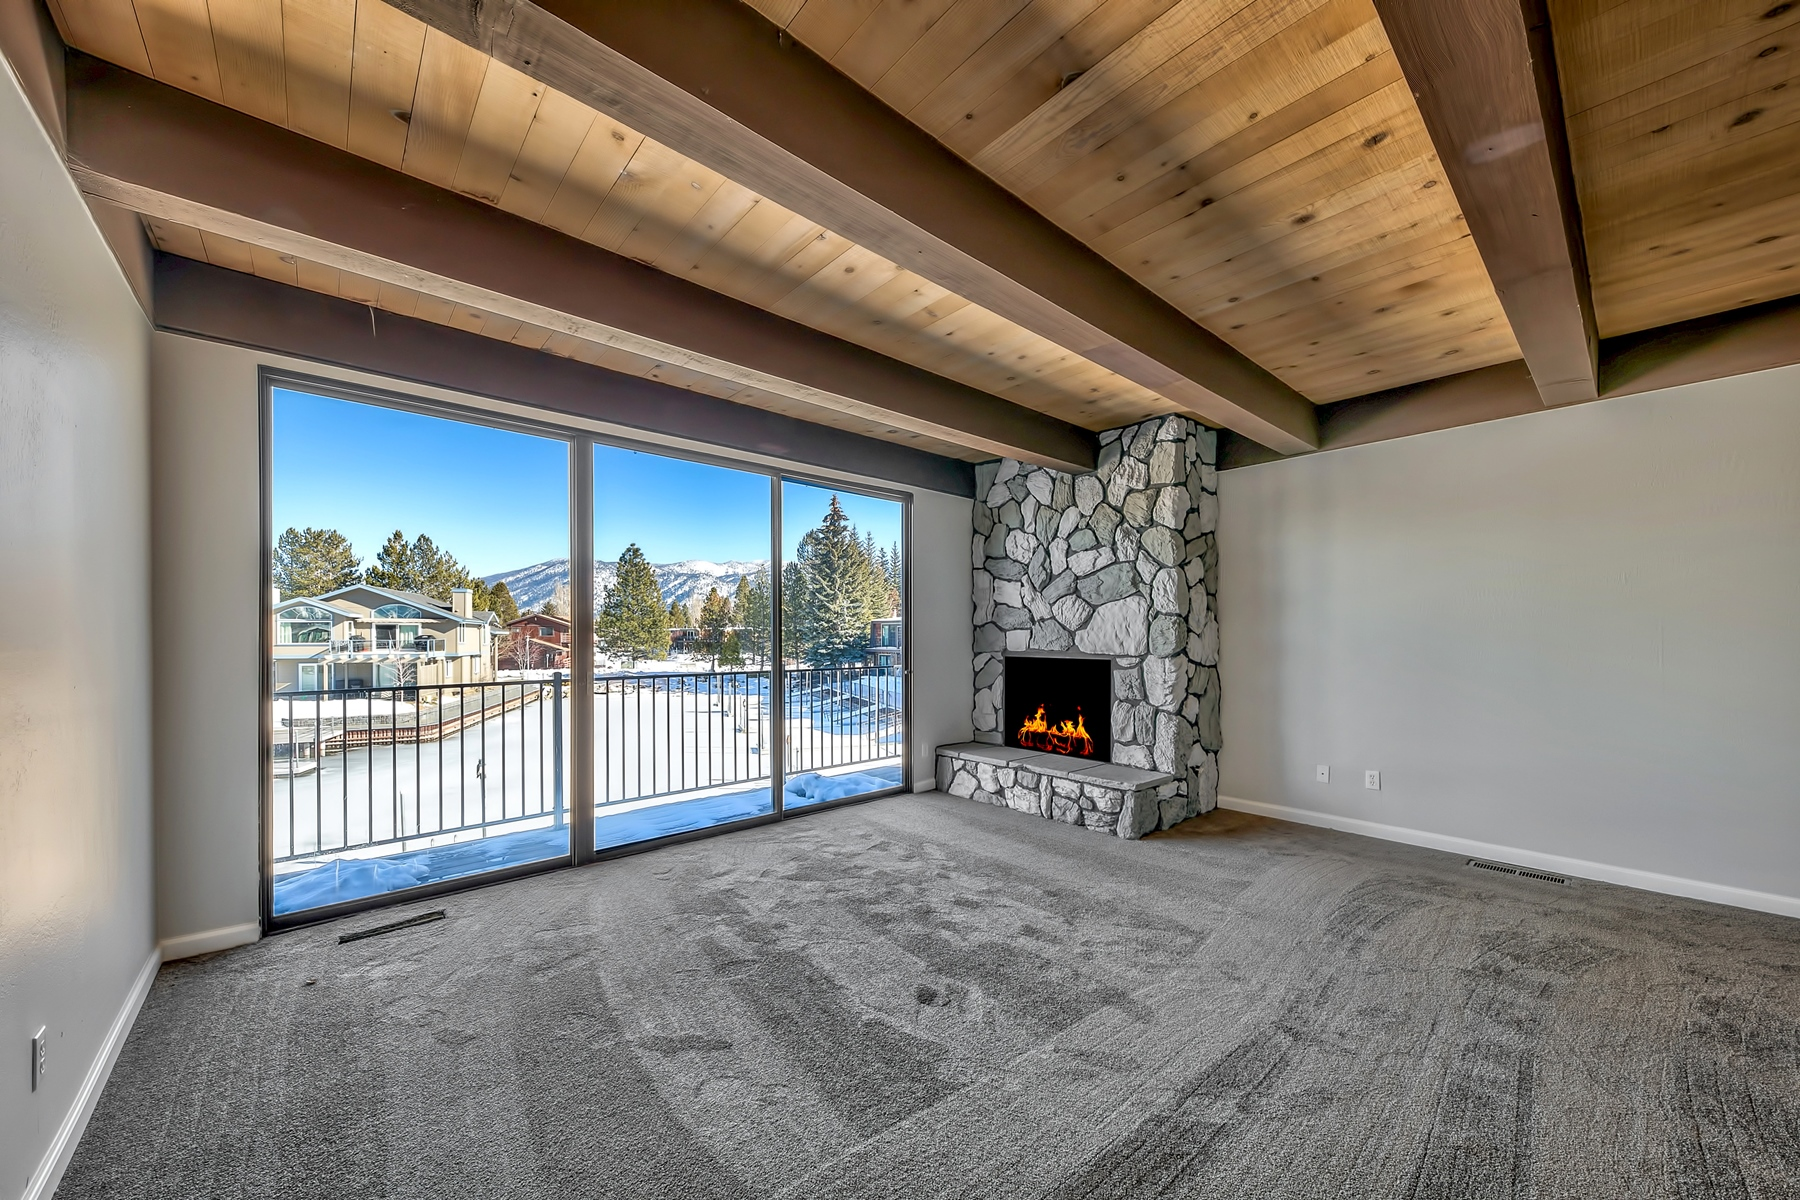 Additional photo for property listing at 2031 Venice #319, South Lake Tahoe, CA 96150 2031 Venice #319 South Lake Tahoe, California 96150 United States